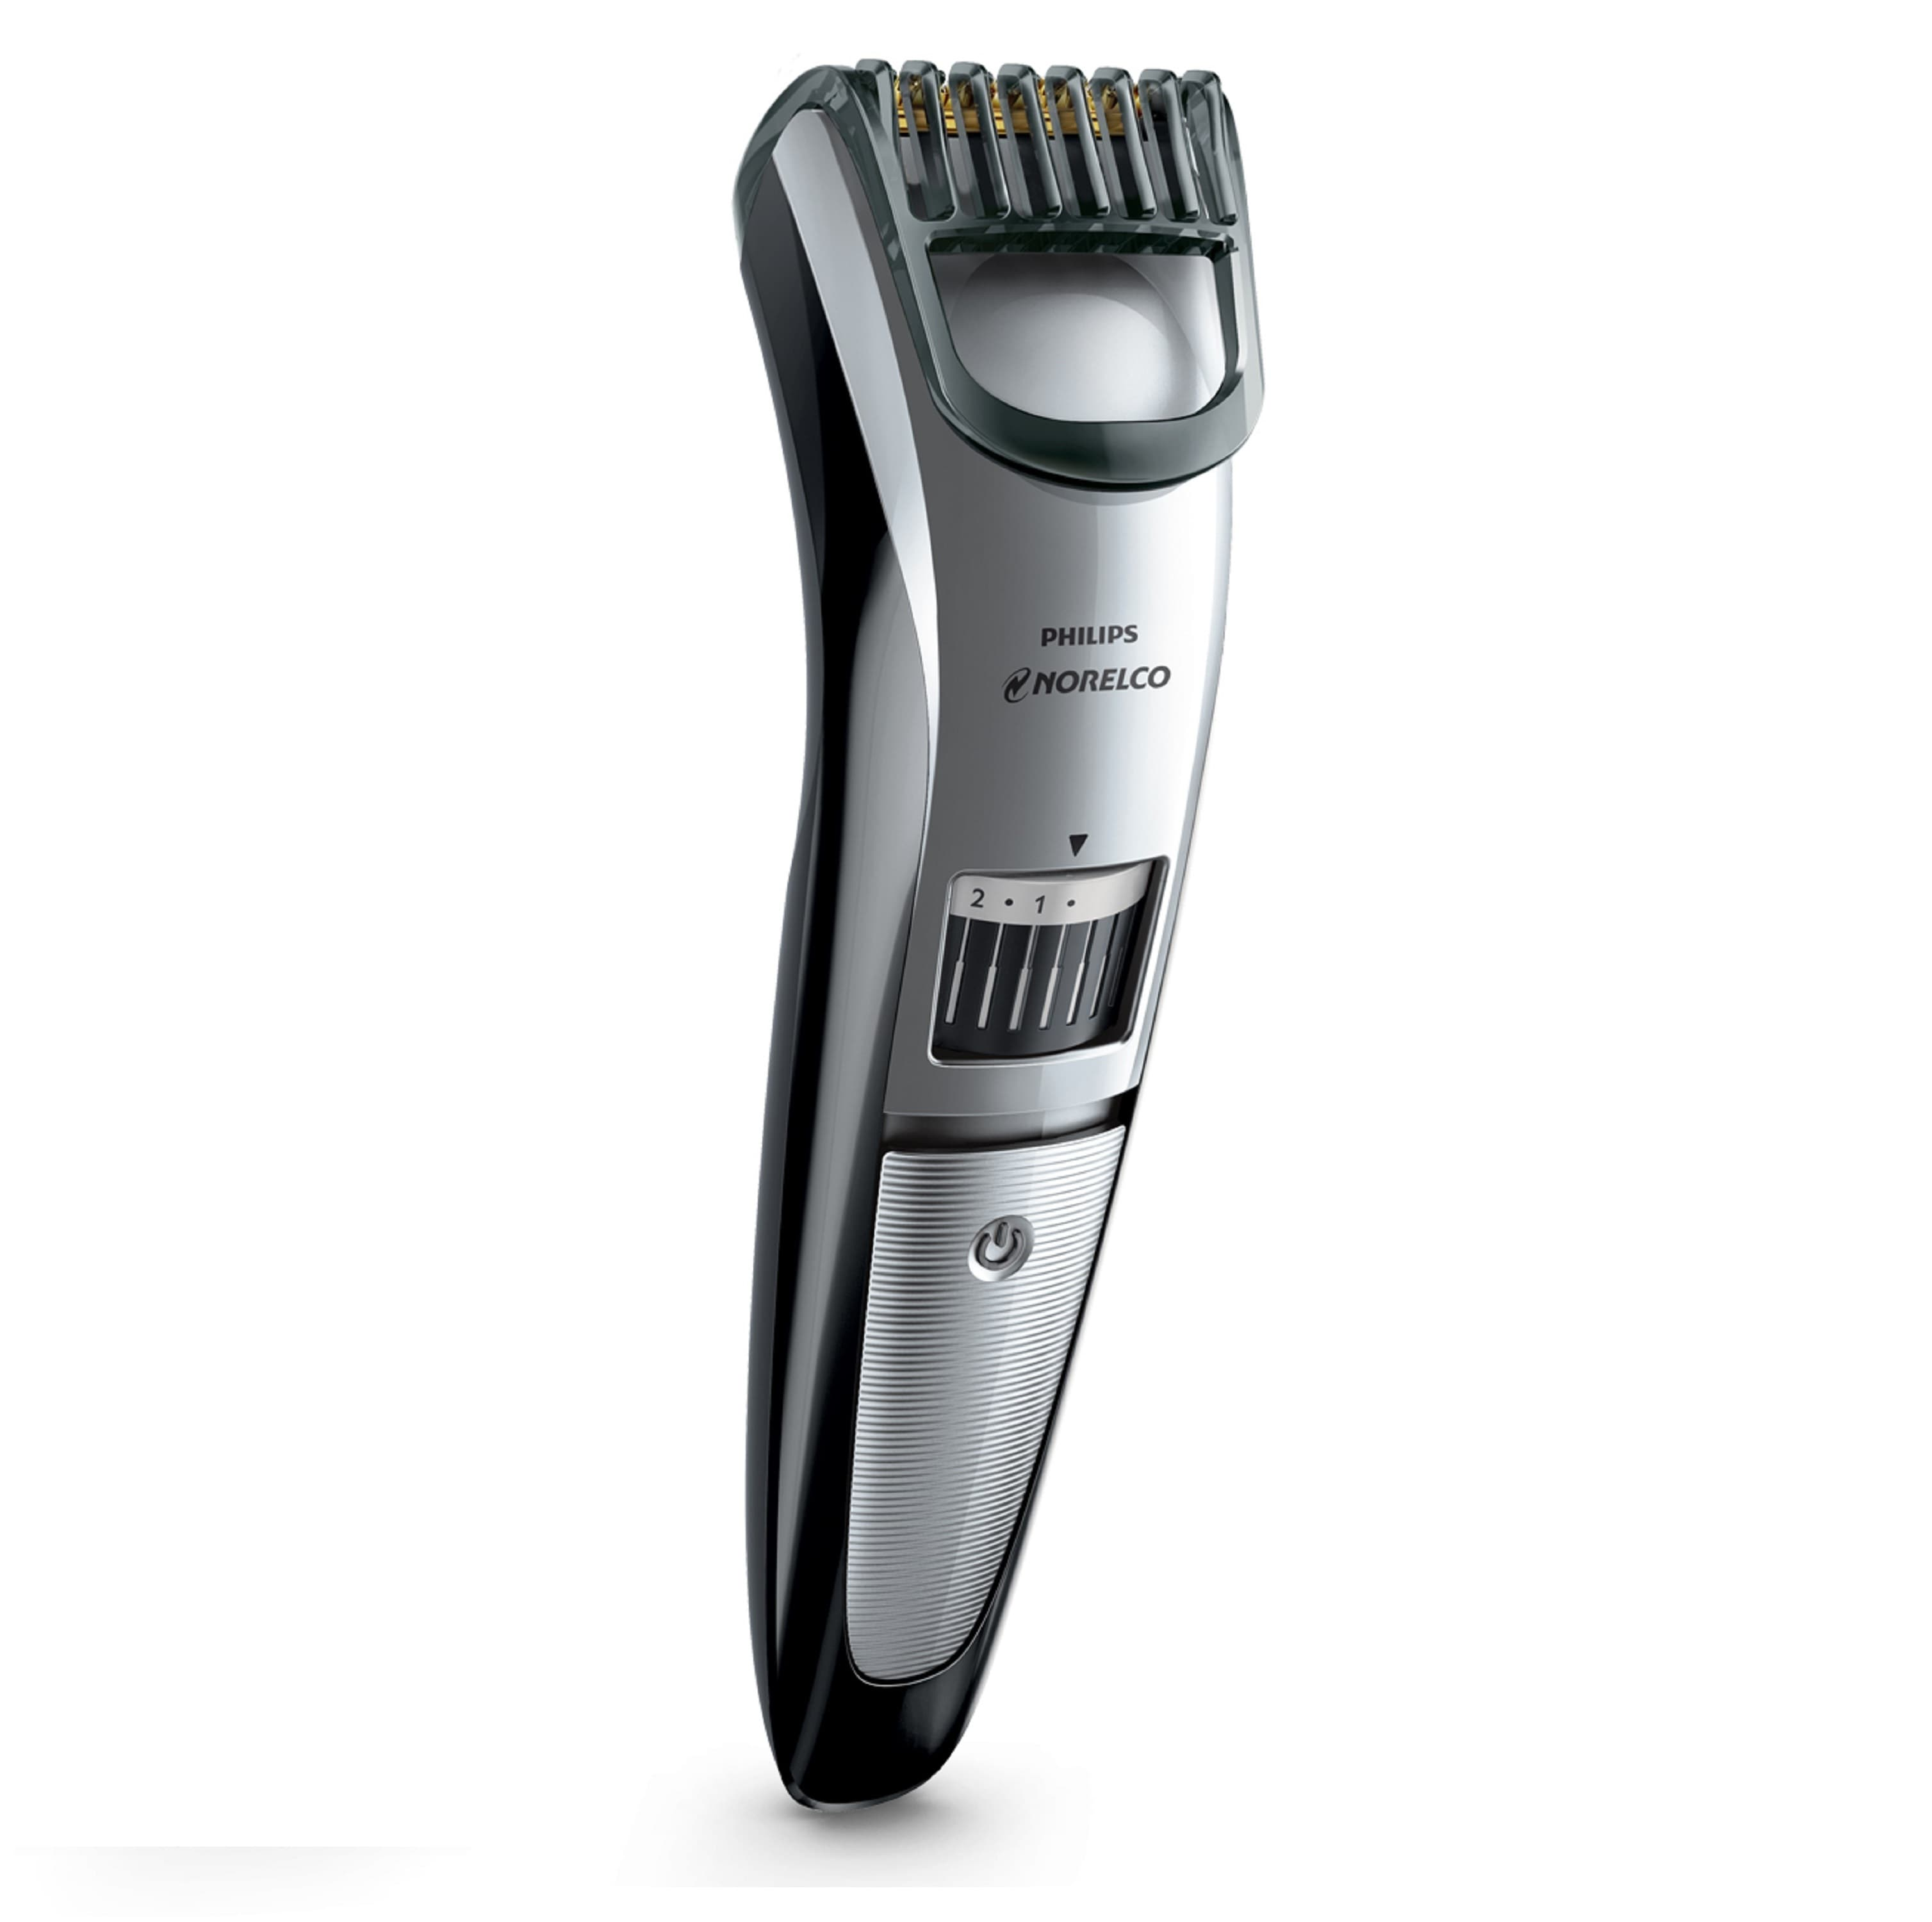 philips norelco beard trimmer series 3500 1